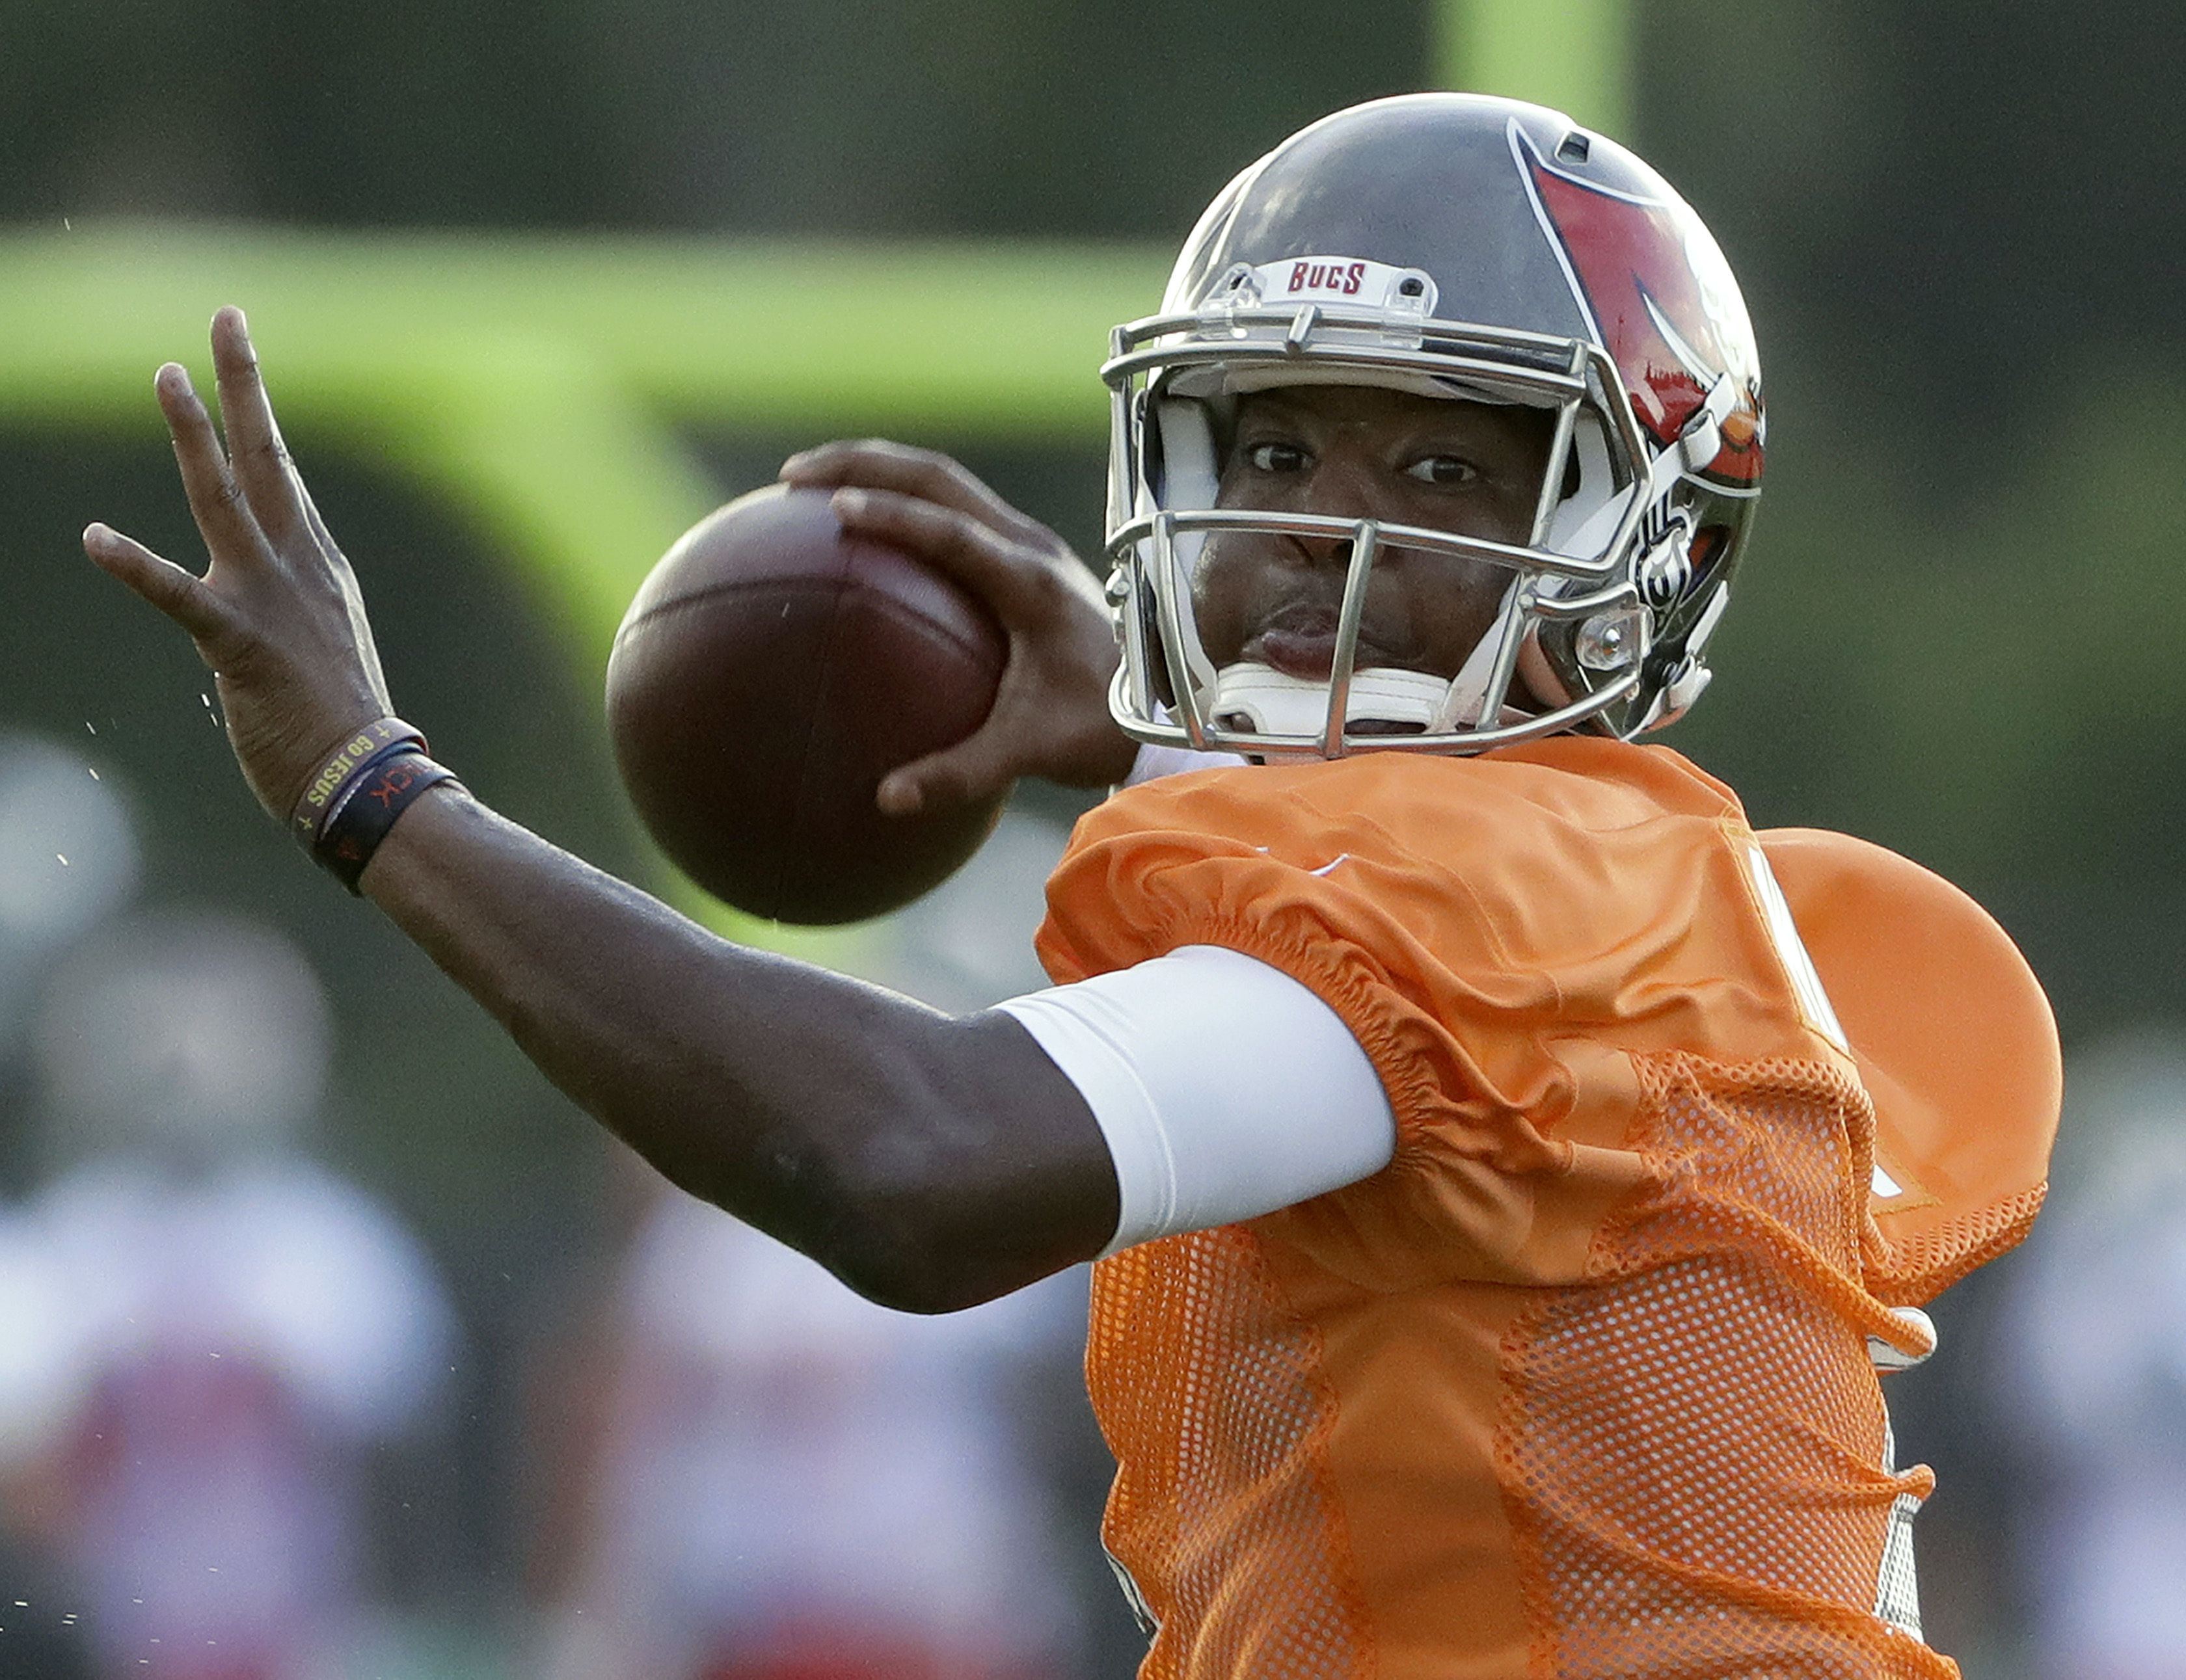 Tampa Bay Buccaneers quarterback Jameis Winston (3) throws a pass during an NFL football teams training camp practice Friday, July 29, 2016, in Tampa, Fla. (AP Photo/Chris O'Meara)